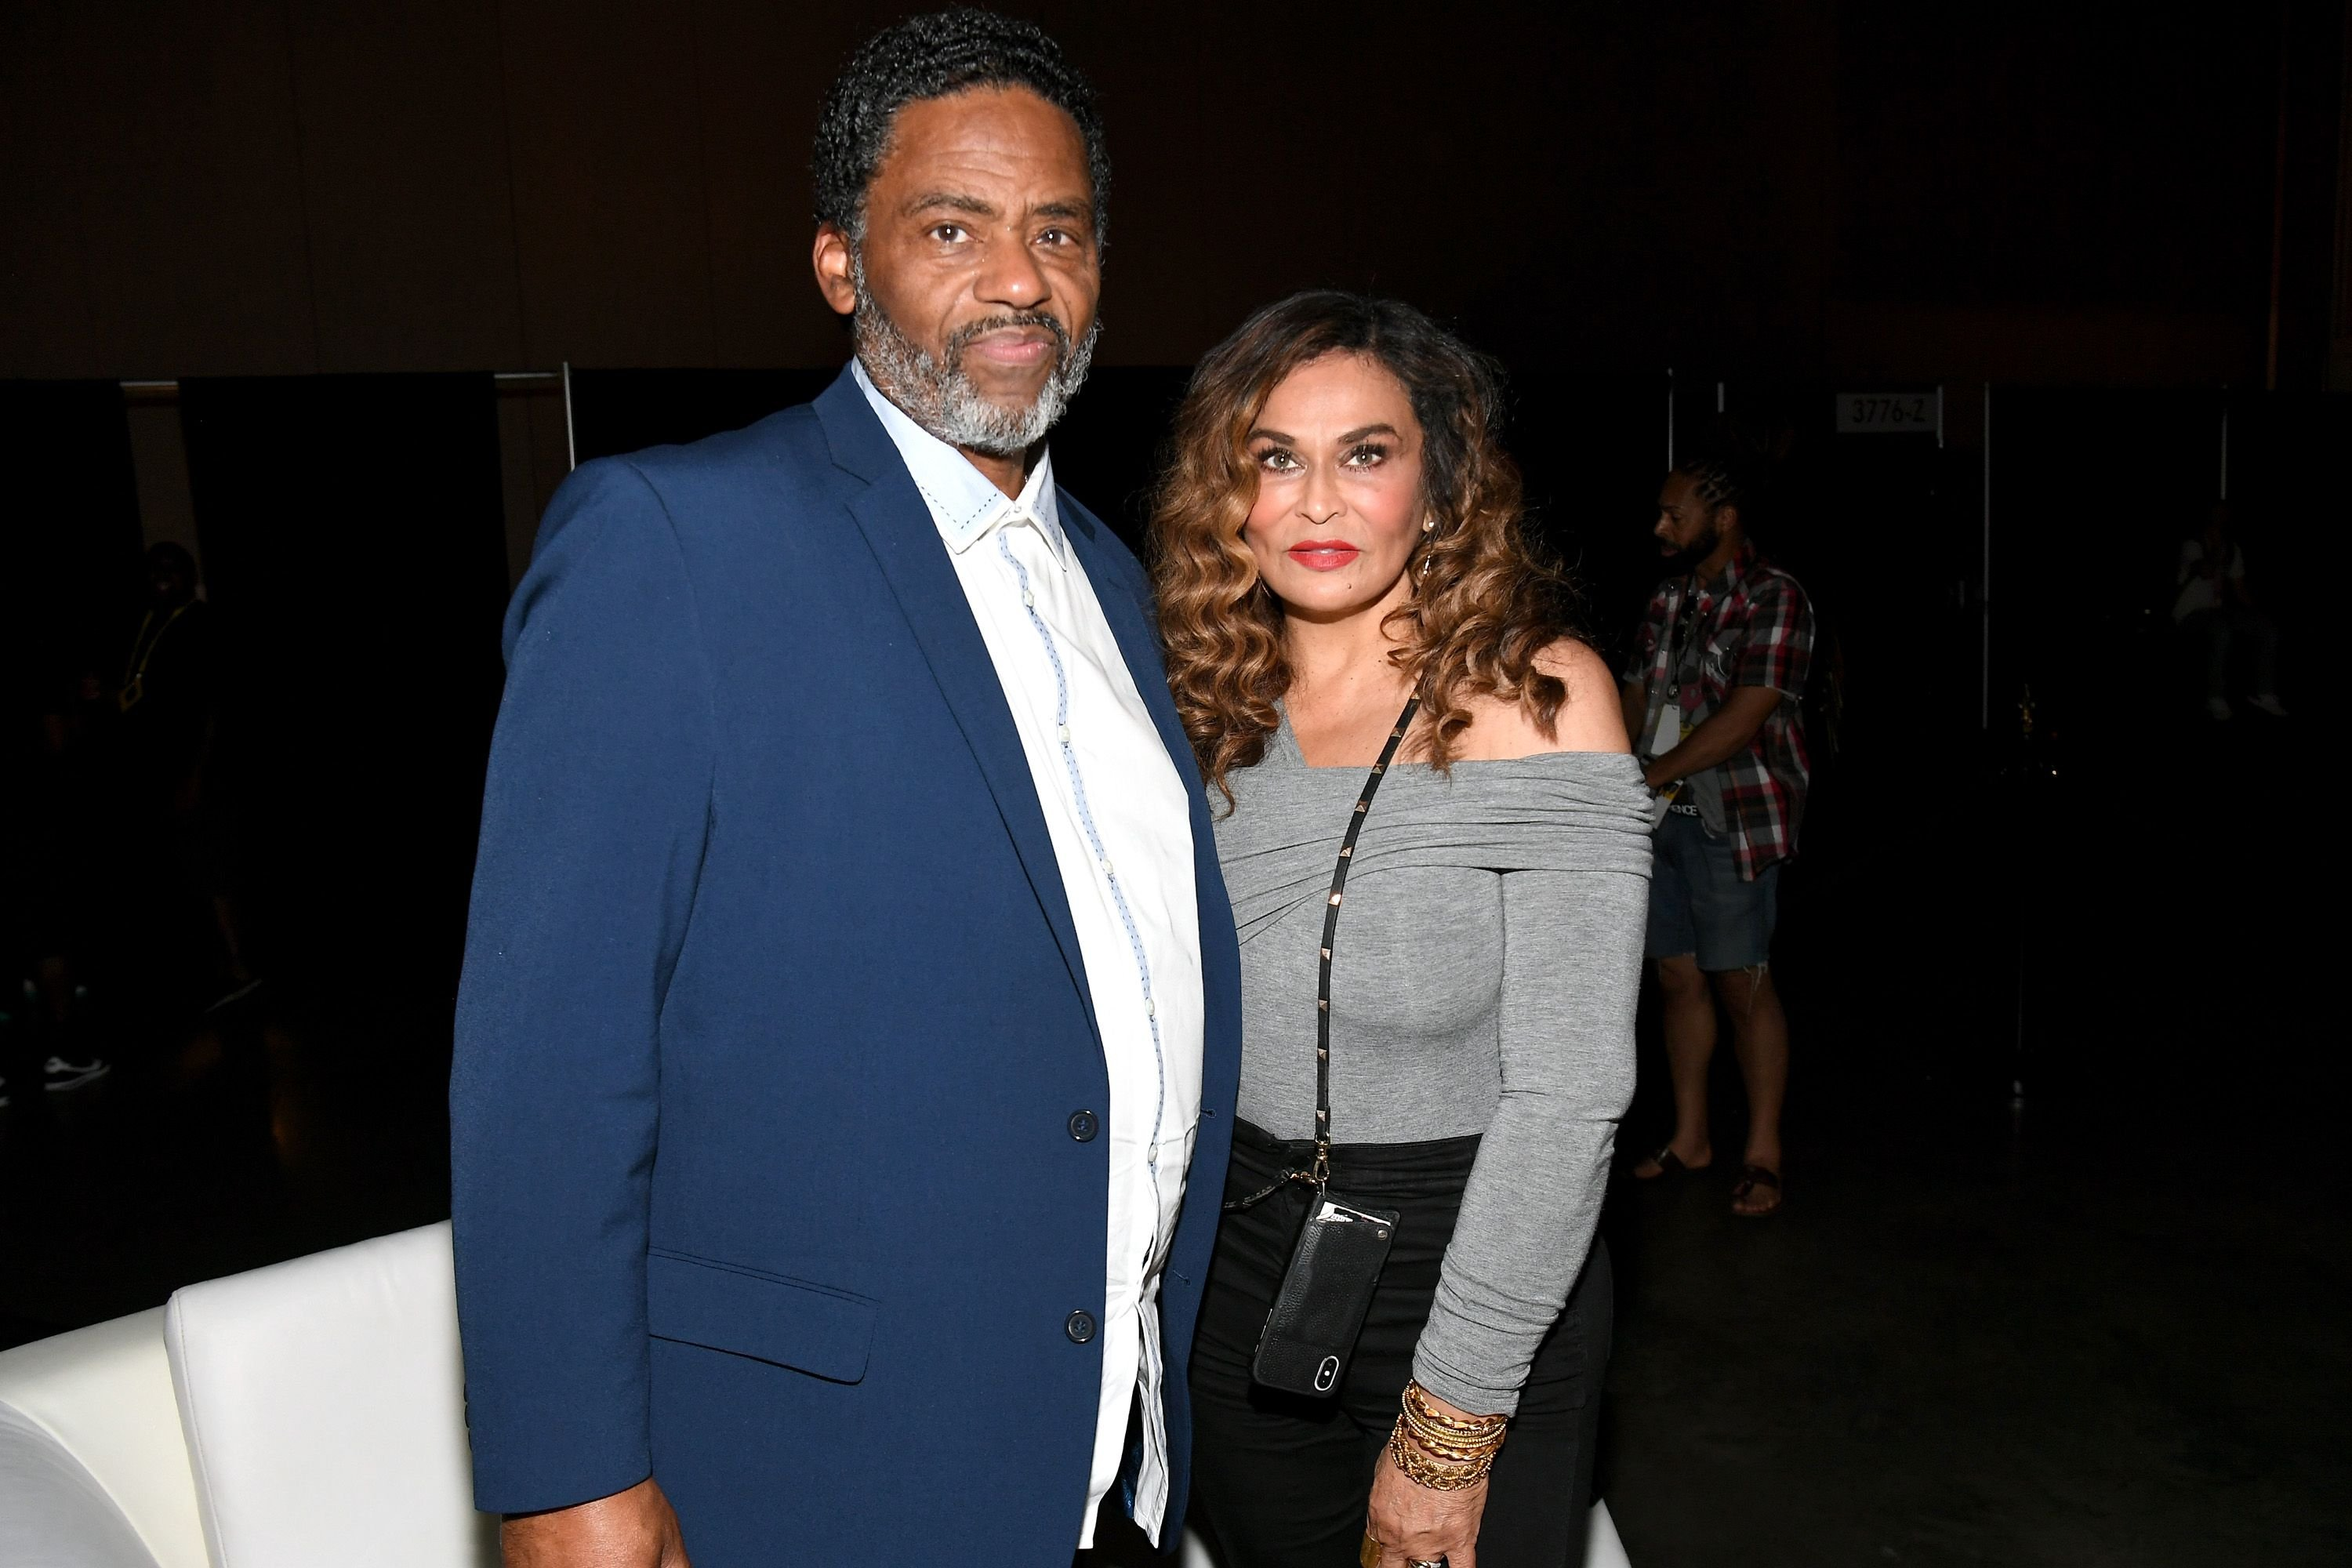 Richard Lawson and Tina Knowles-Lawson at the 2019 ESSENCE Festival in 2019 in New Orleans | Source: Getty Images